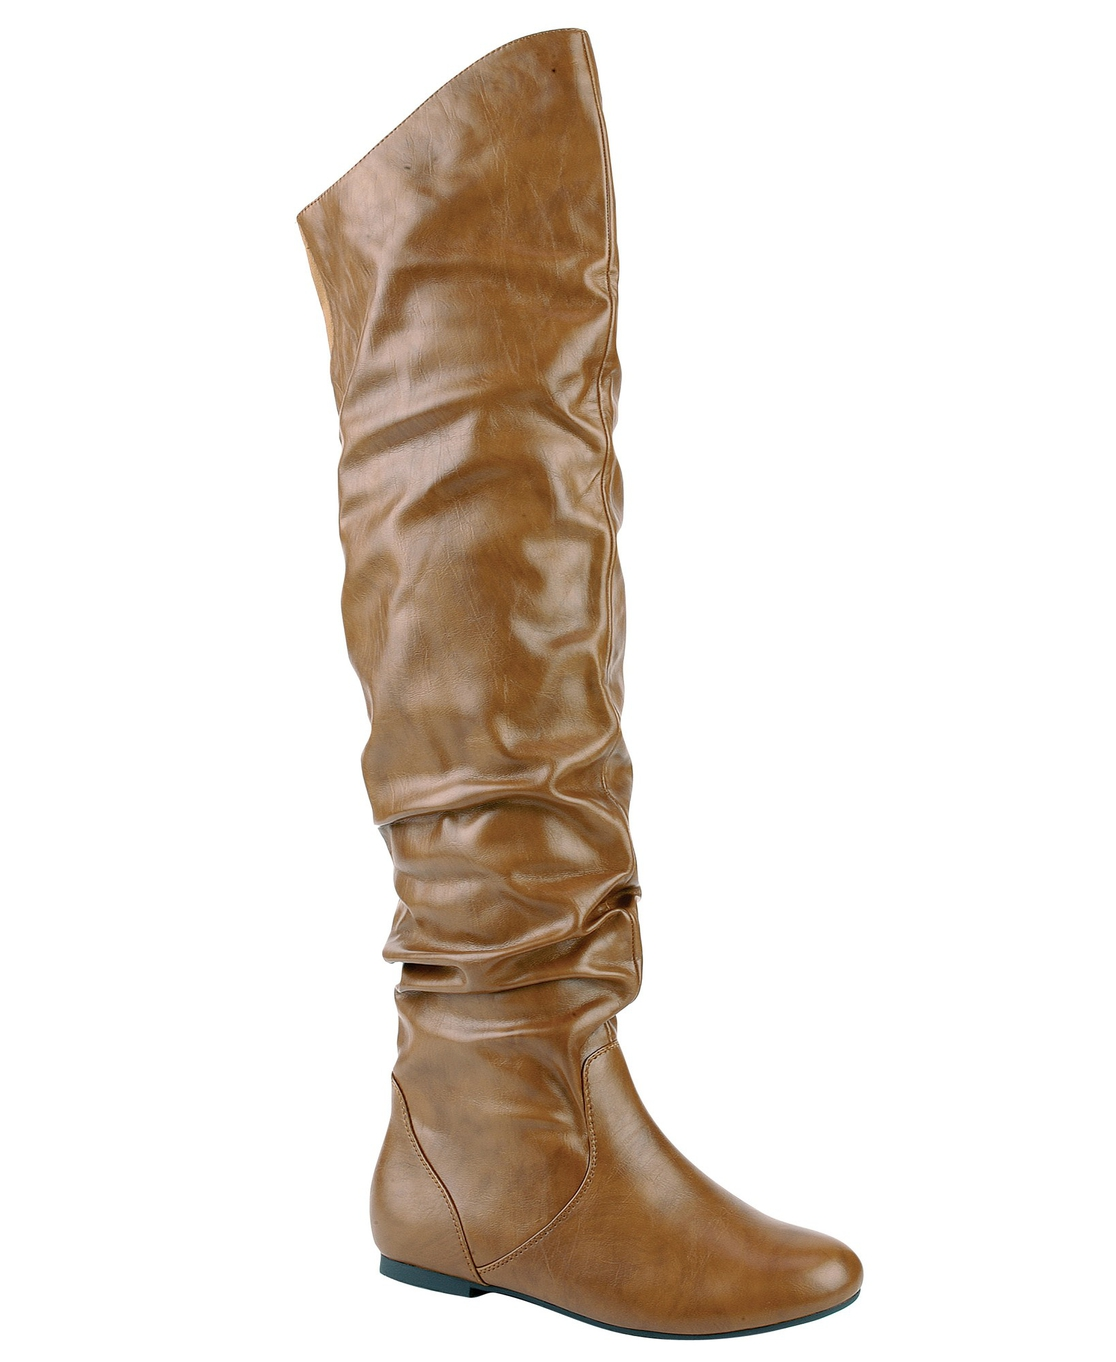 WOMEN SLOUCHY OVER THE KNEE BOOTS - orangeshine.com